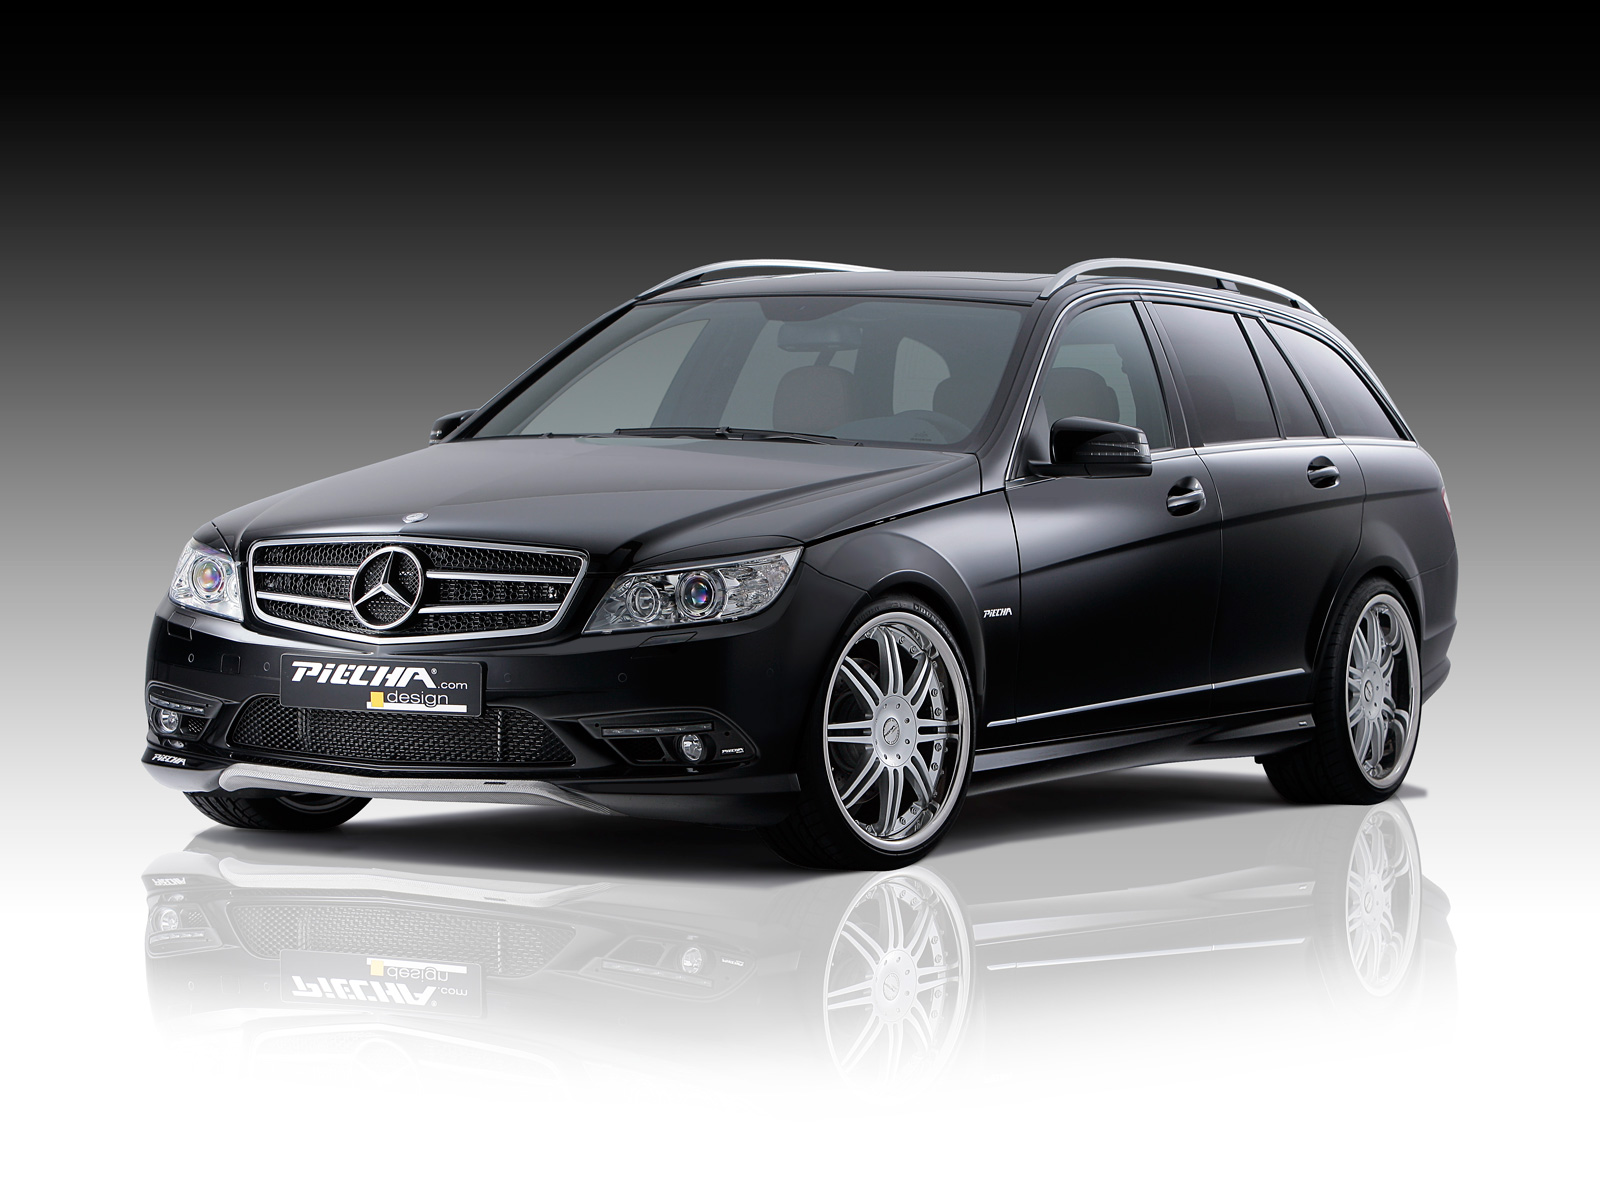 Mercedes benz c class t model photos reviews news for Mercedes benz c300 horsepower